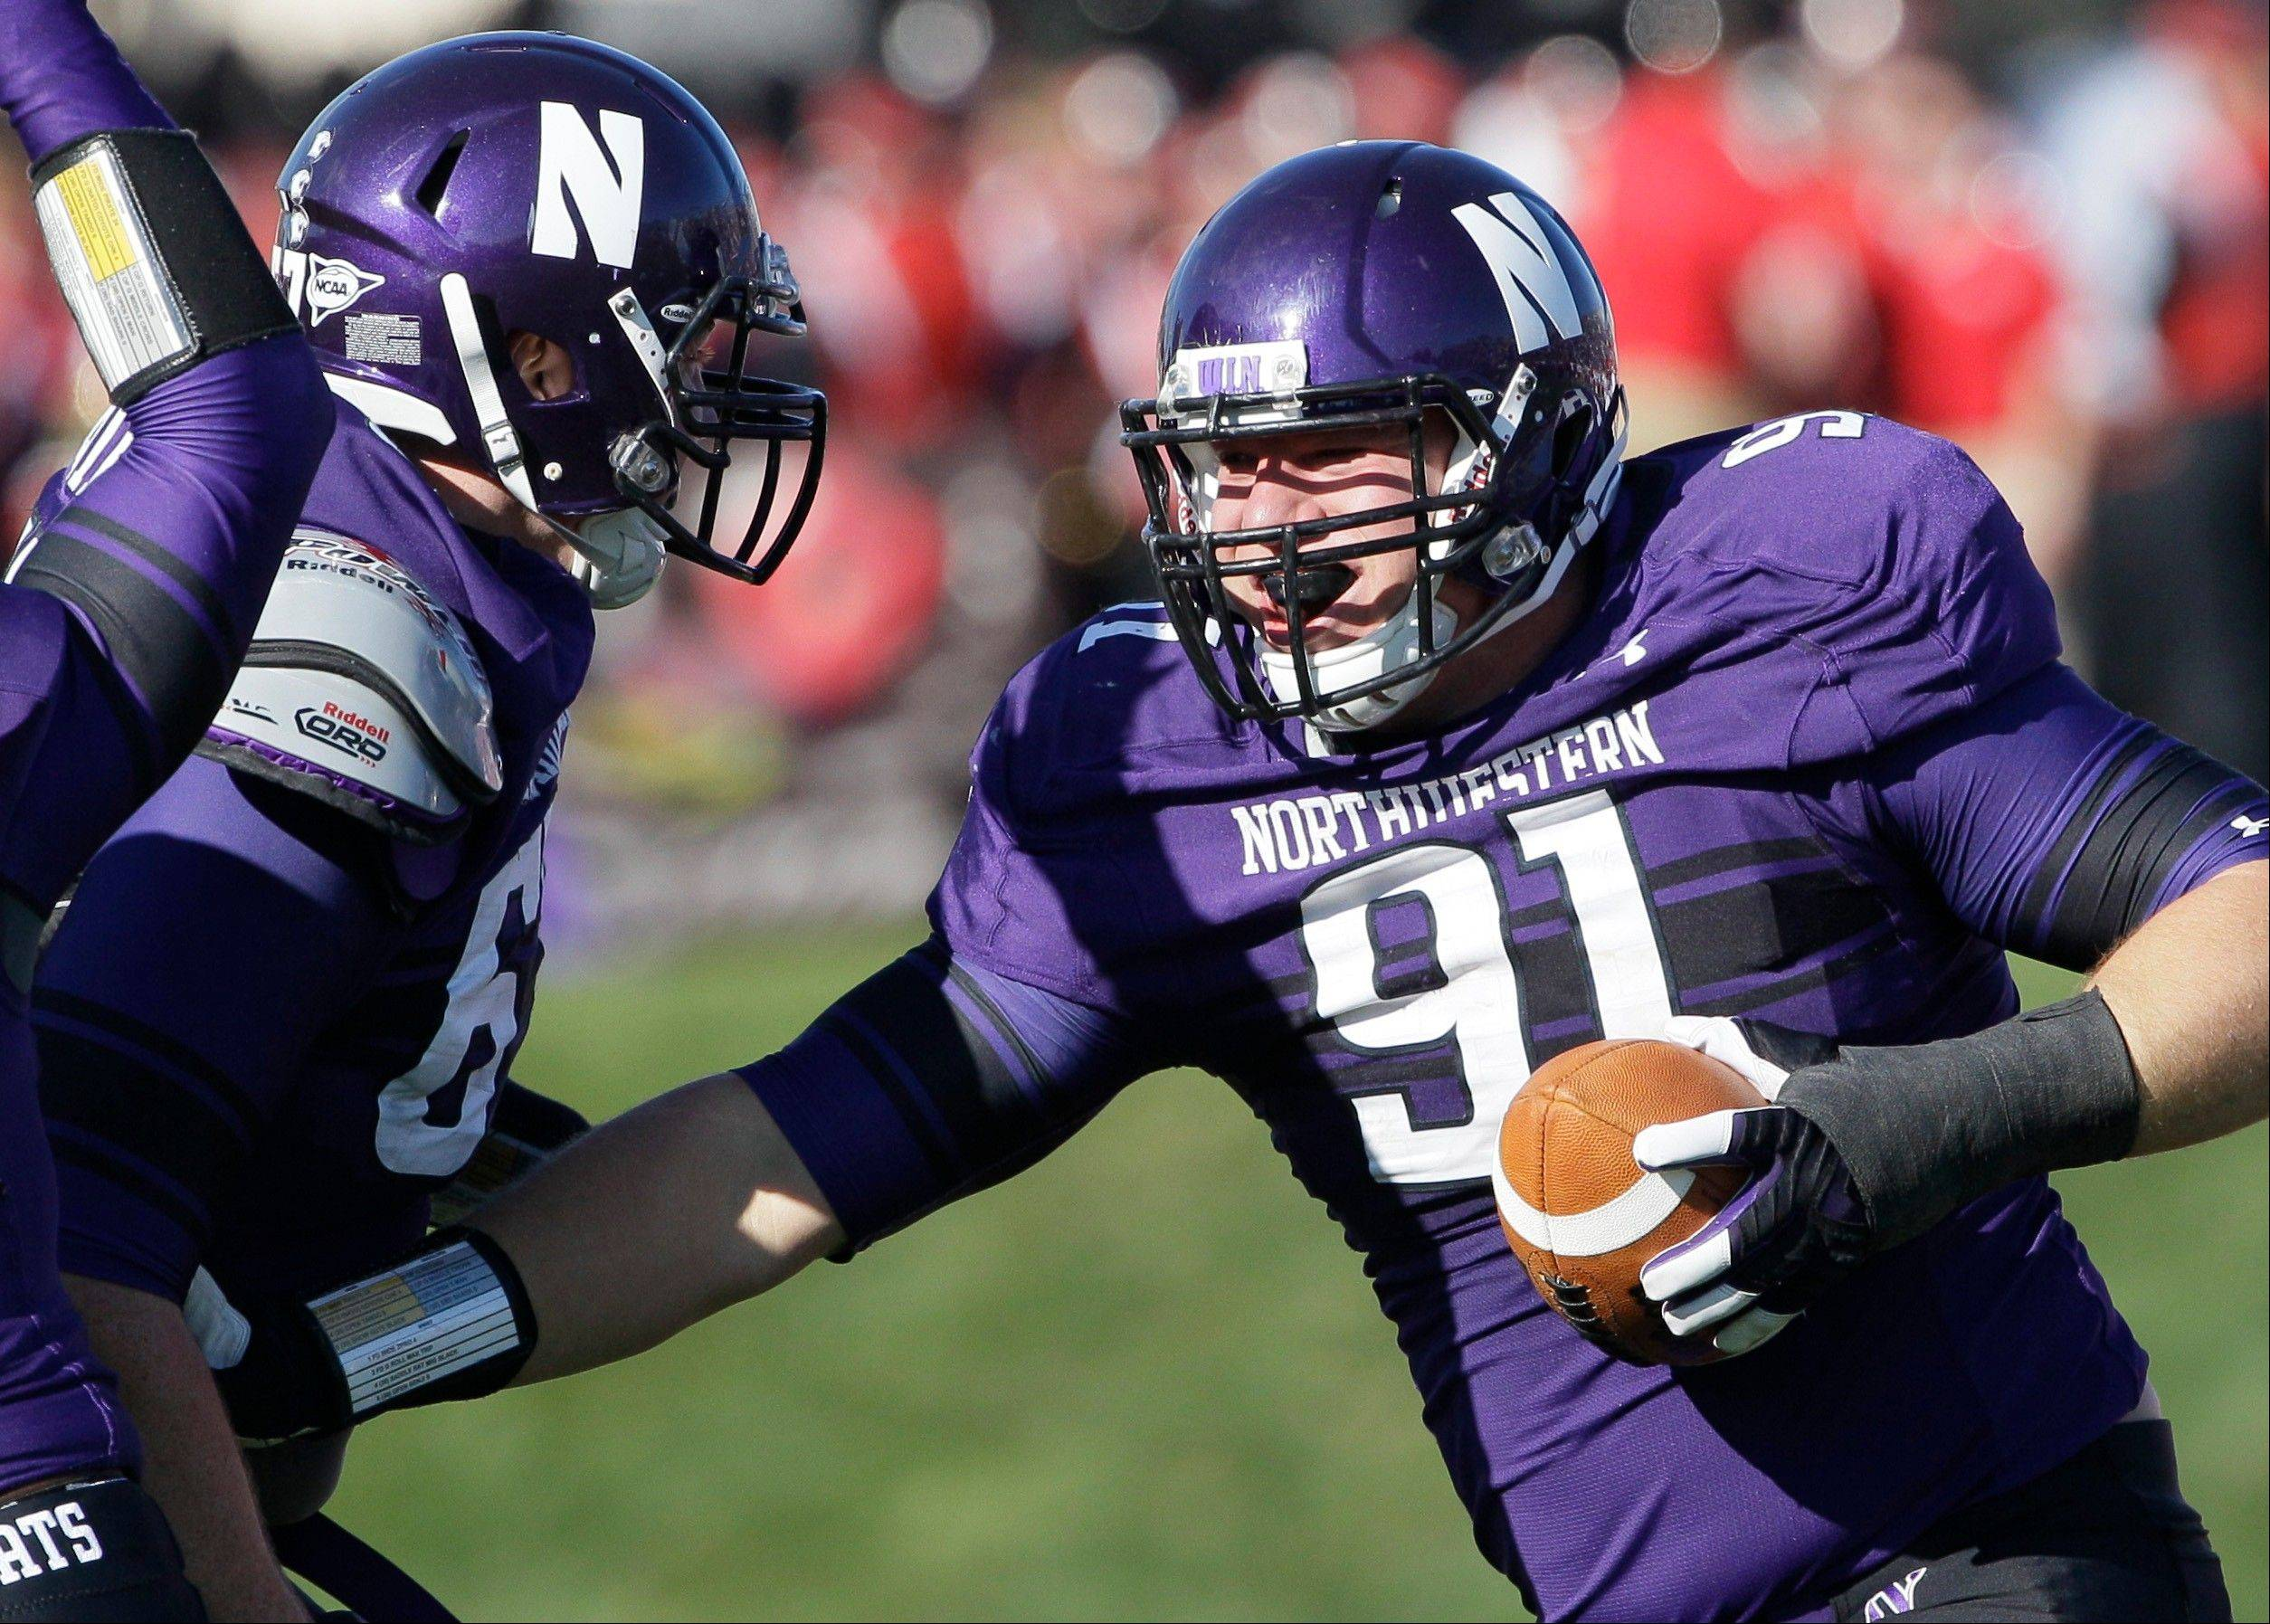 Northwestern defensive line Brian Arnfelt celebrates Saturday with defensive line Sean McEvilly after recovering a fumble against South Dakota in Evanston. Northwestern and Minnesota are two feel-good stories so far this season. Both teams are 4-0.